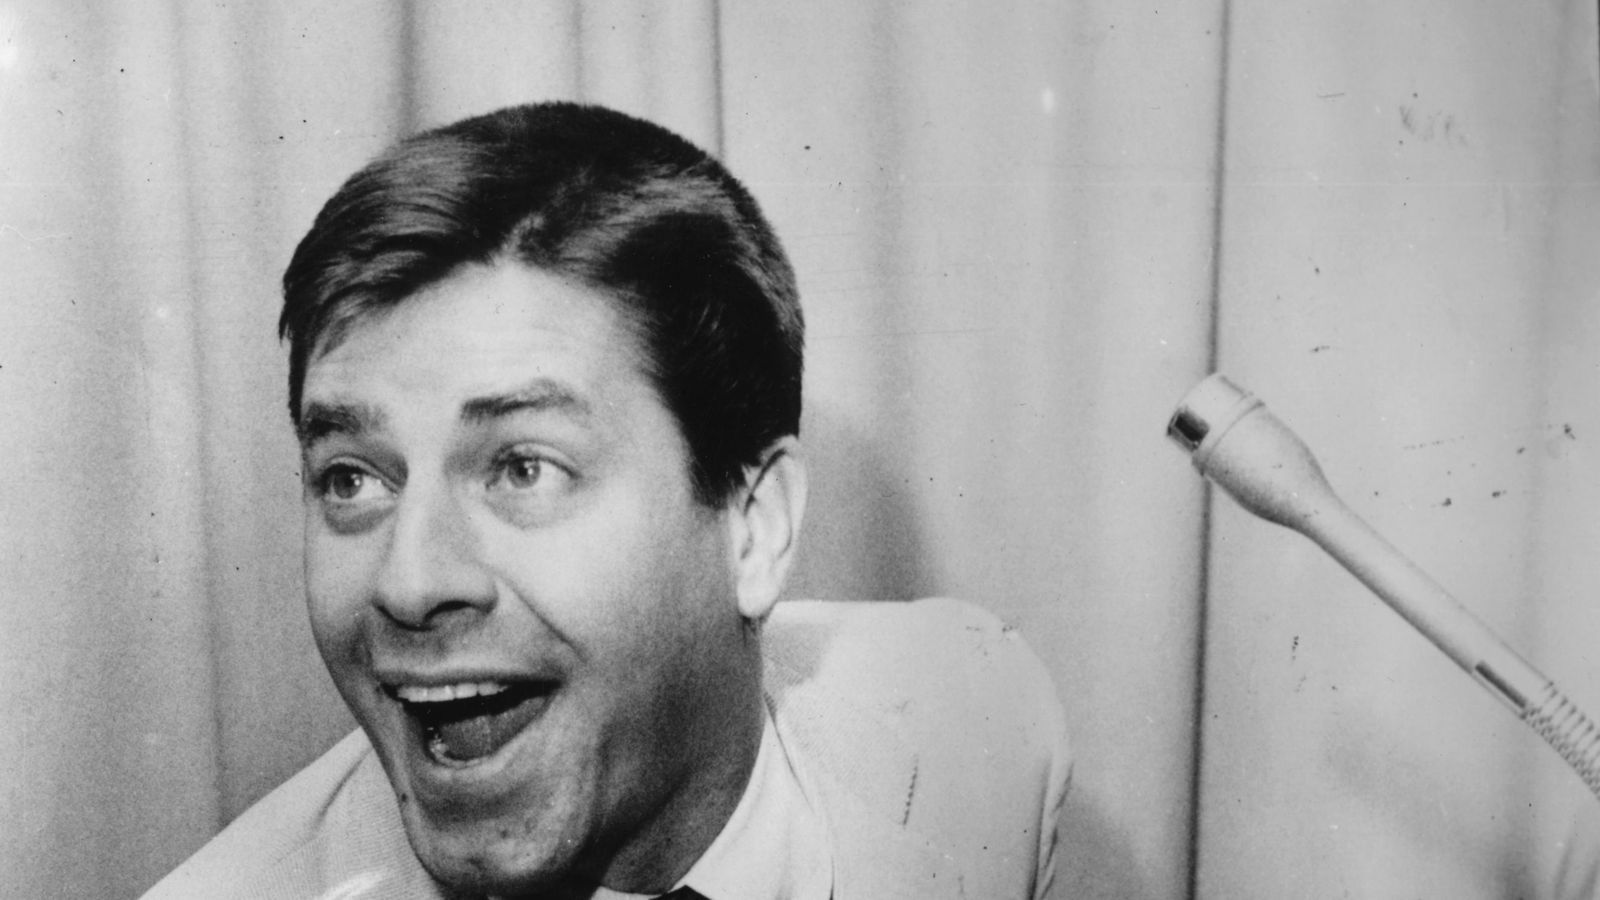 L'actor Jerry Lewis